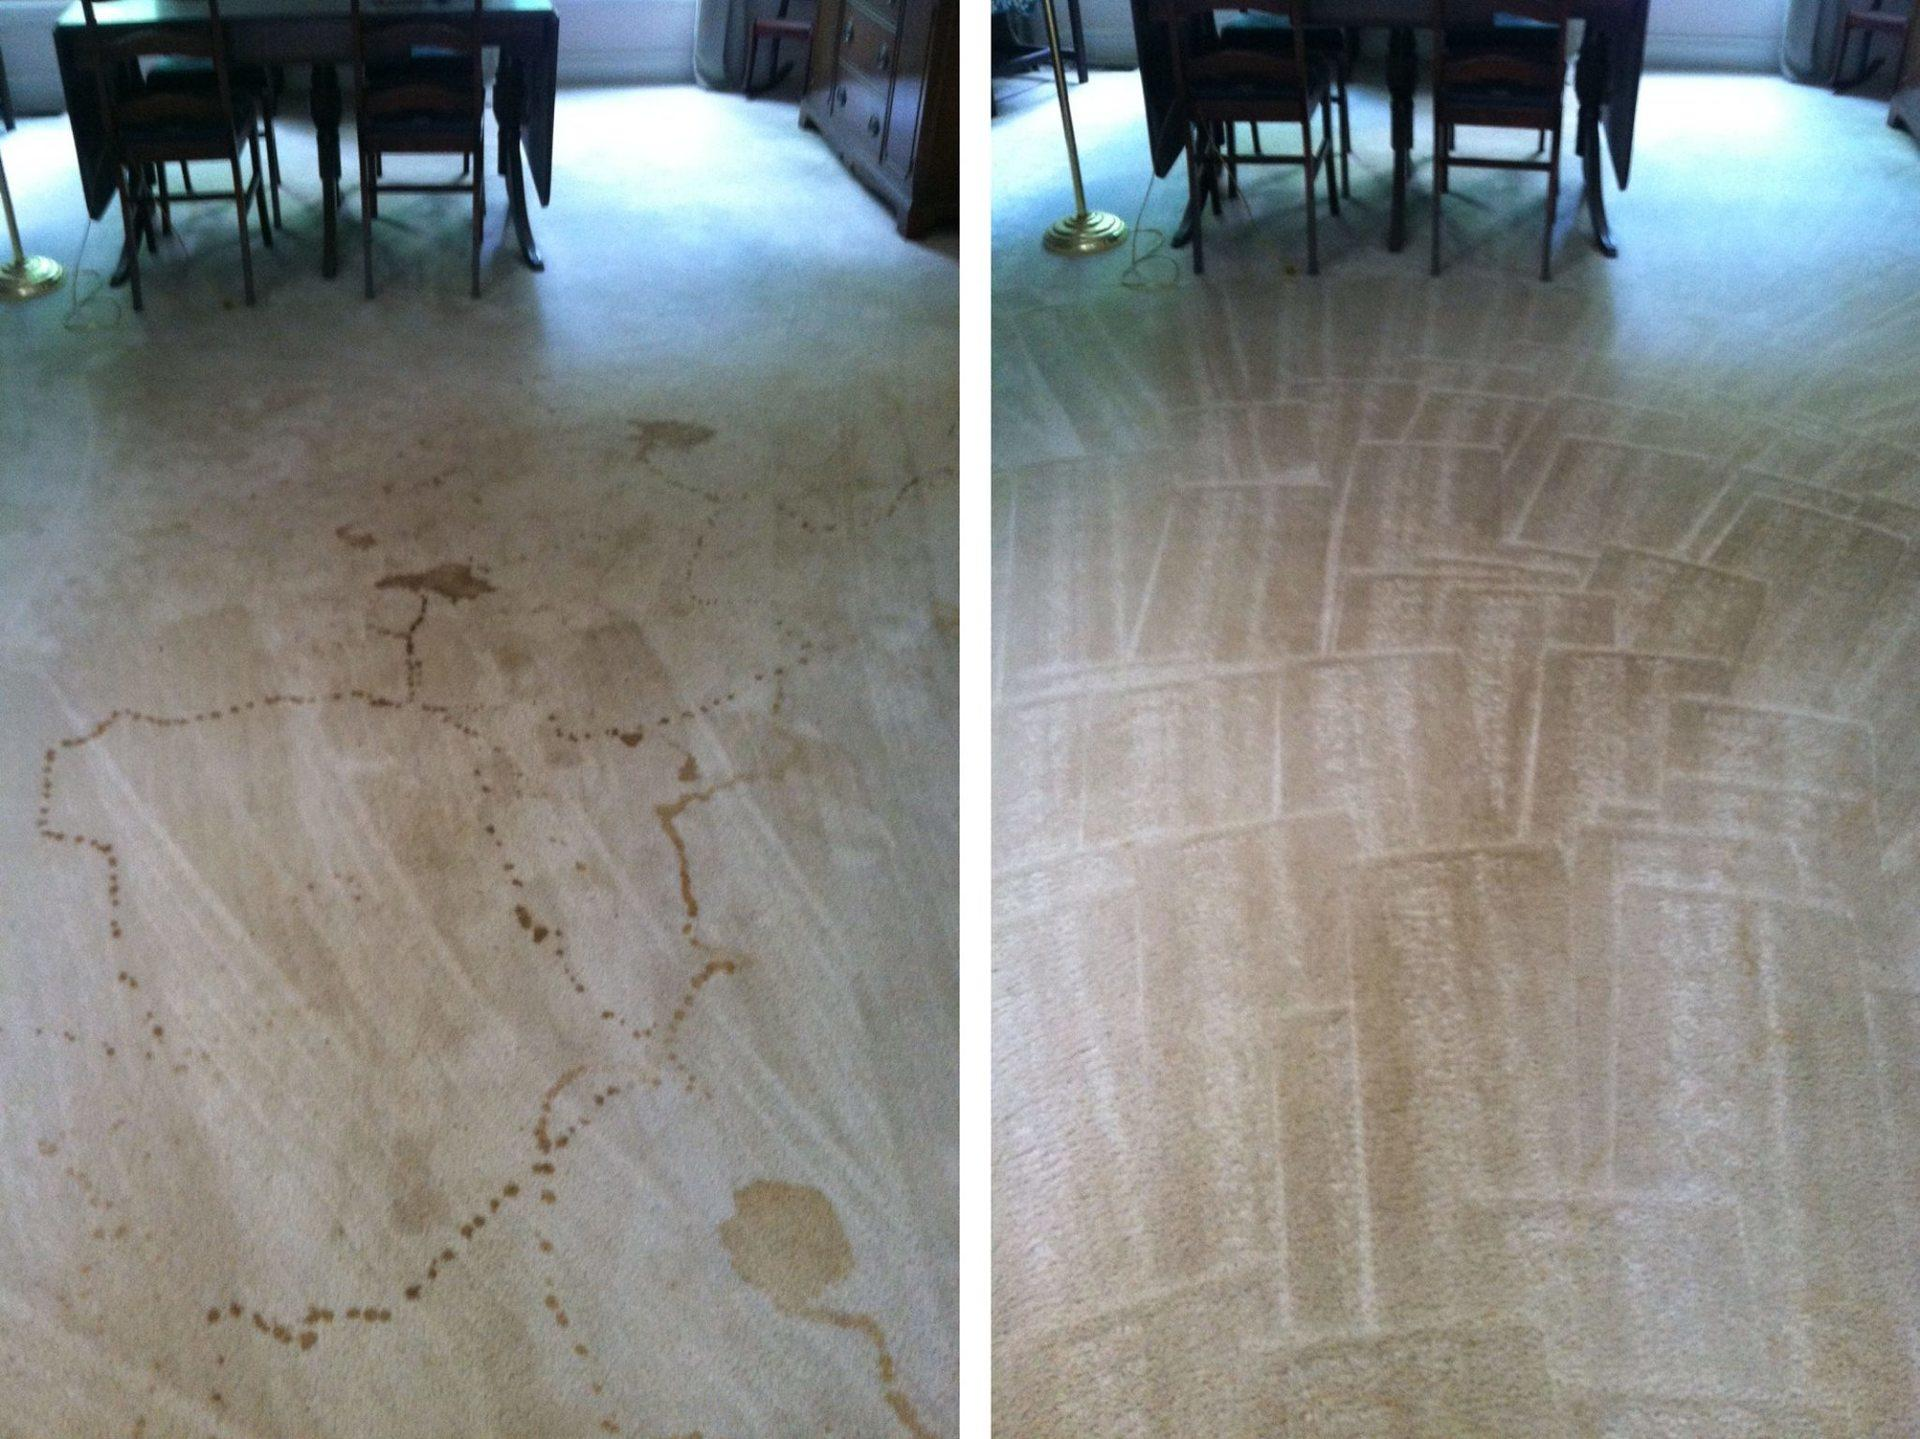 Mullins Carpet Cleaning Inc image 1